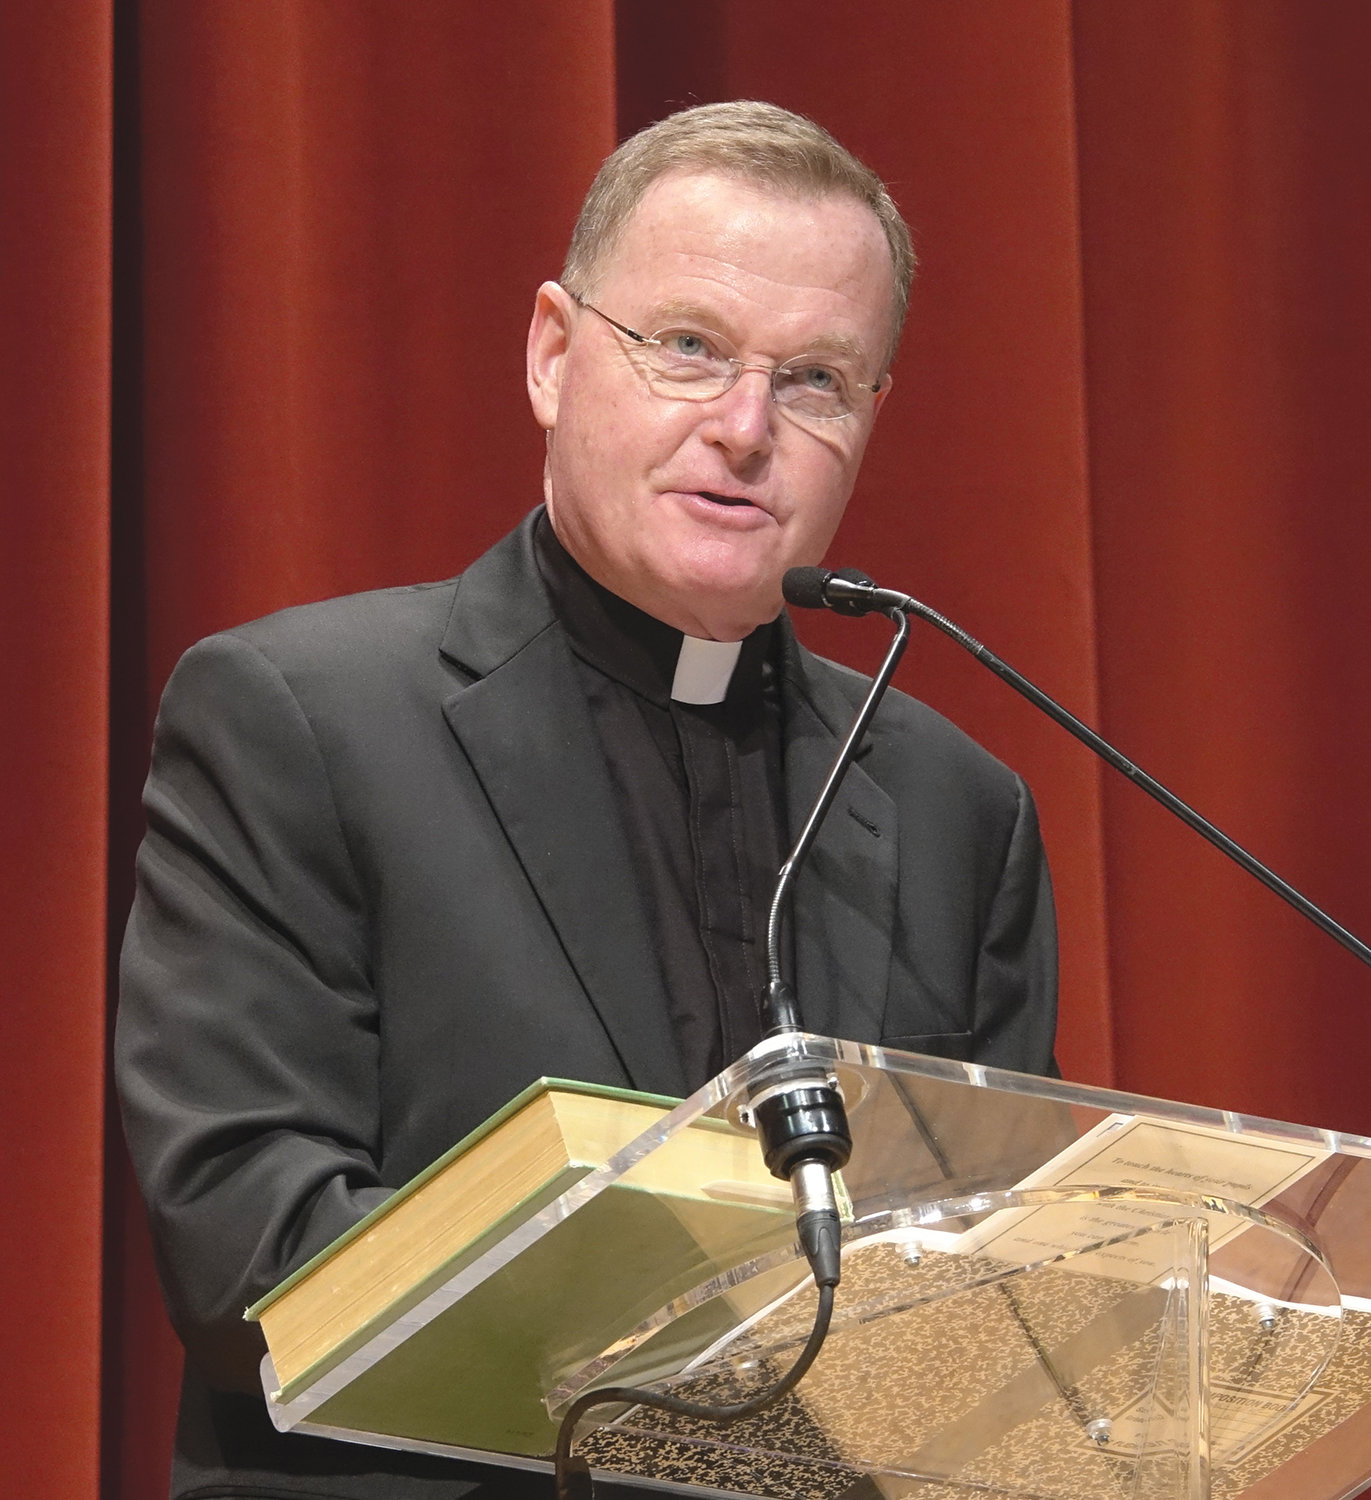 Bishop-elect Edmund Whalen, a former principal and faculty member at Msgr. Farrell High School on Staten Island, delivered a well-received keynote address.